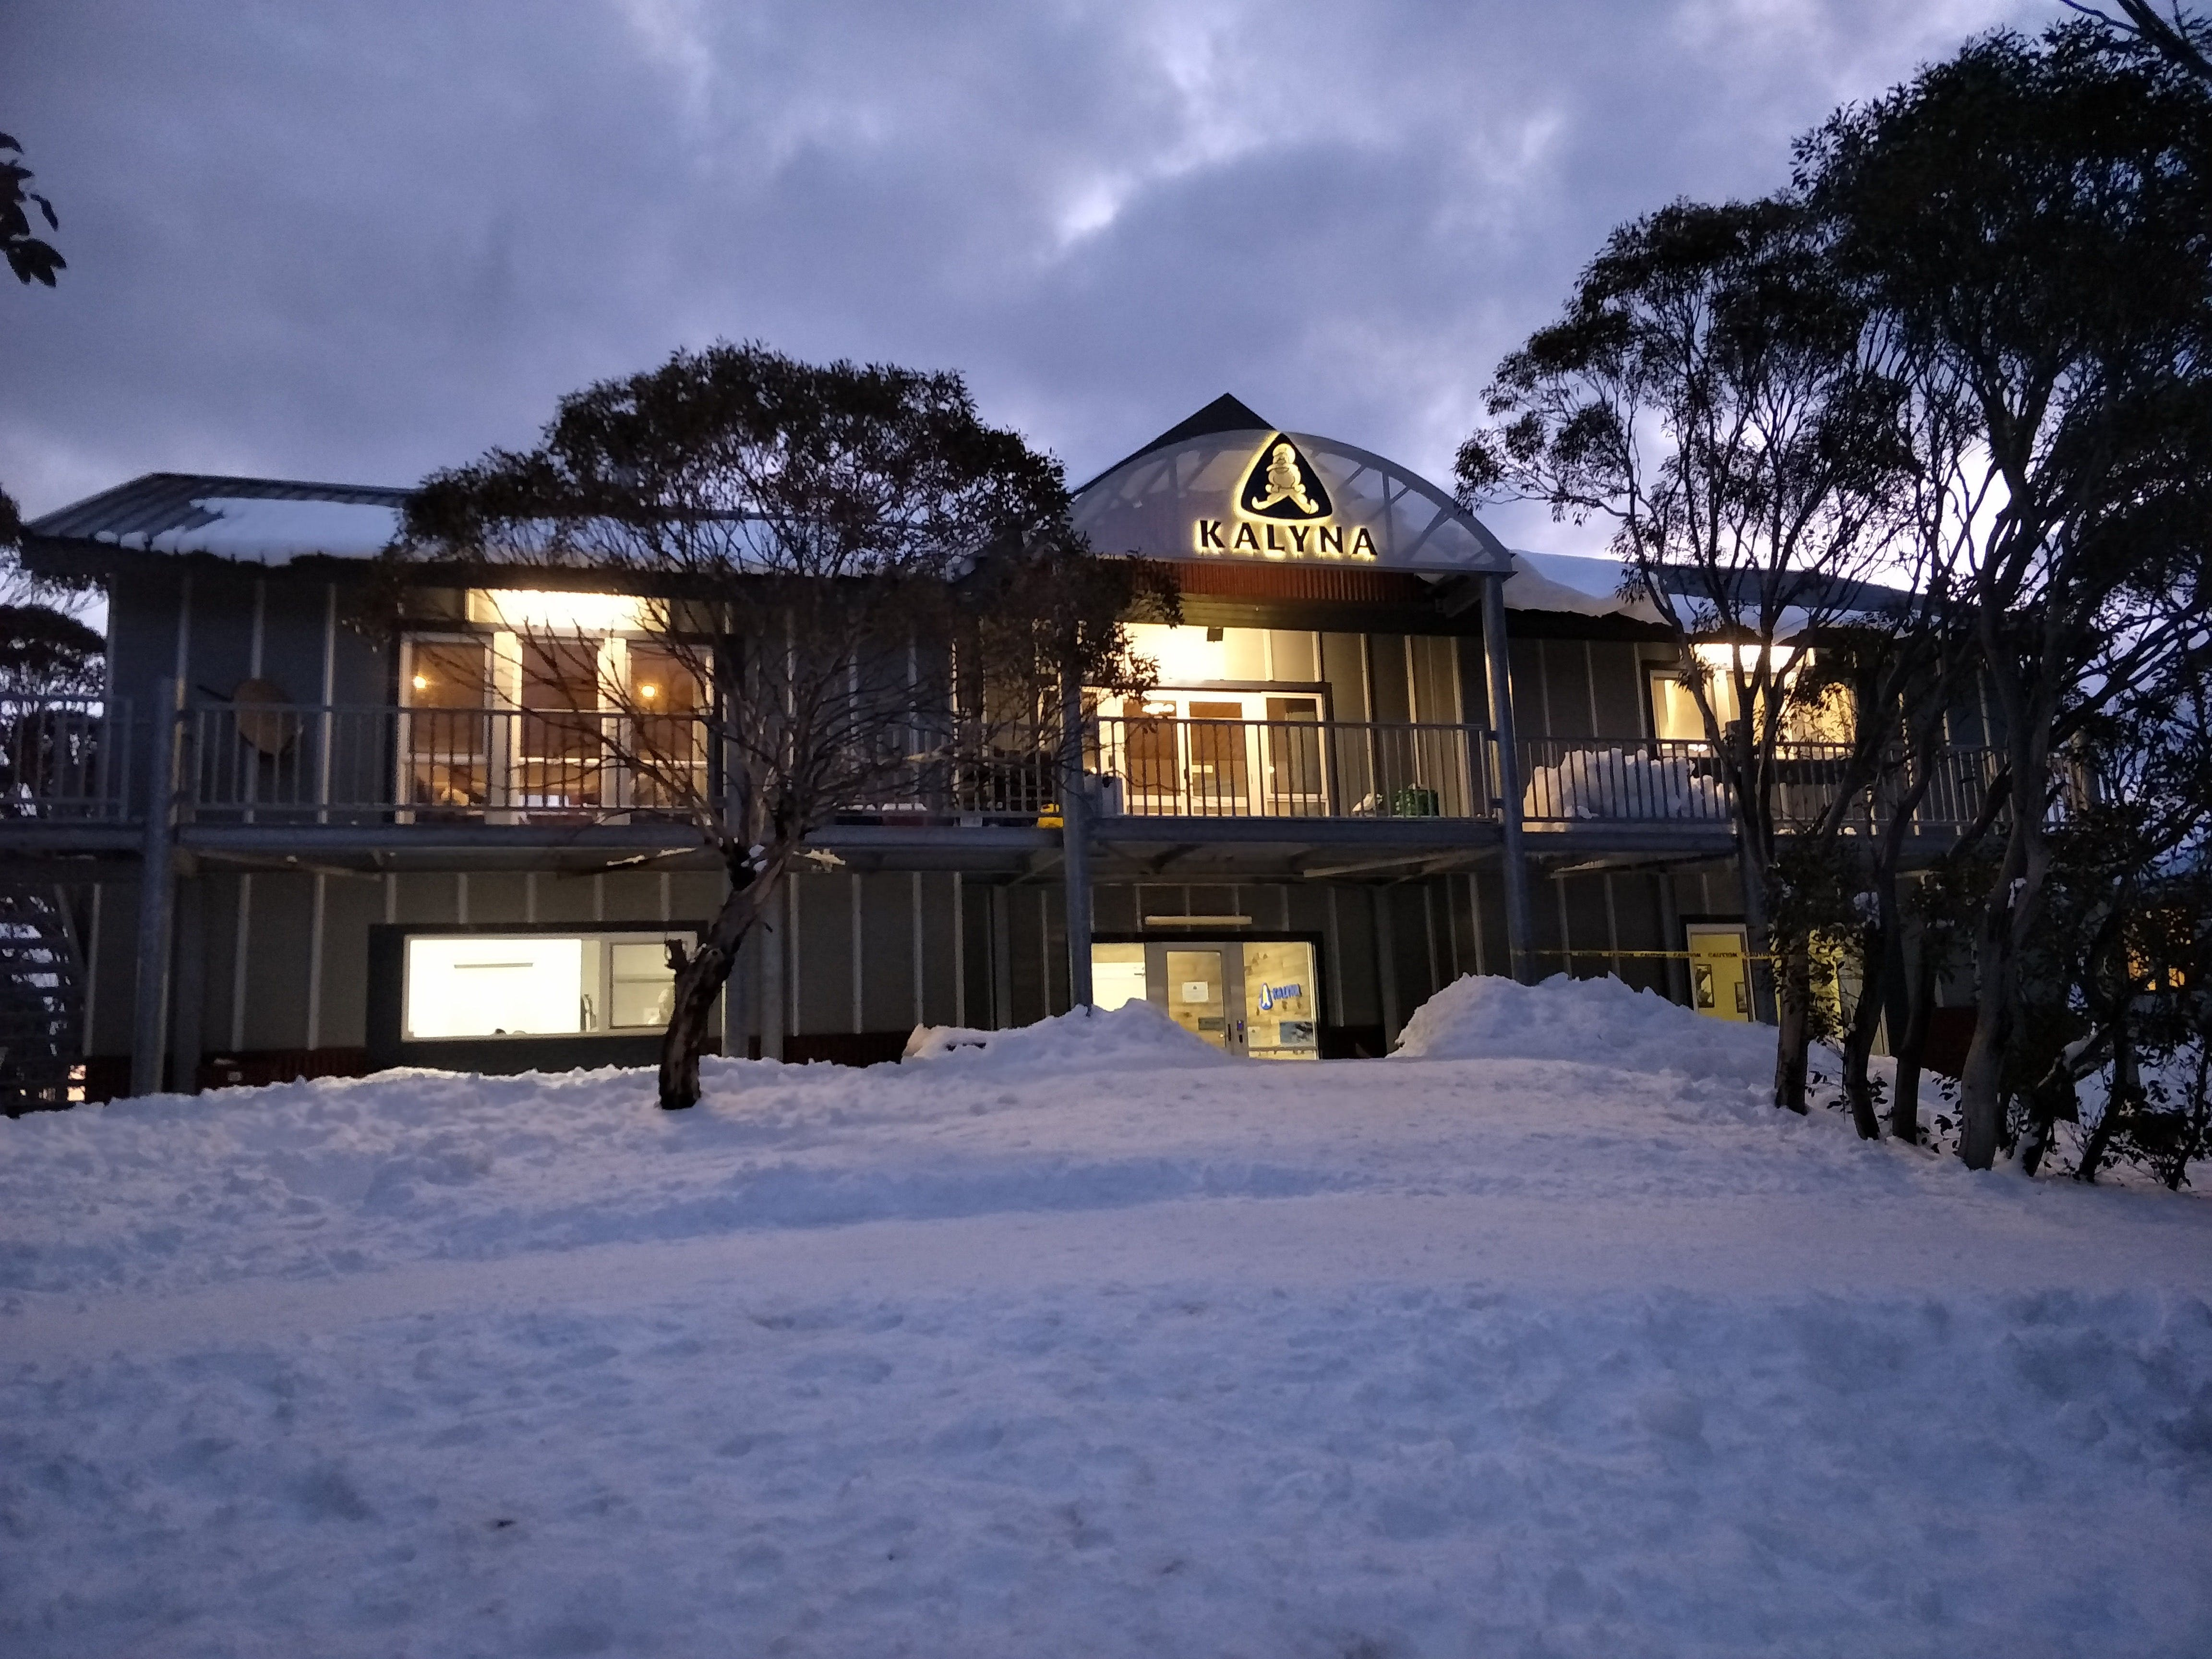 Kalyna Ski Club - Mount Hotham - Surfers Gold Coast